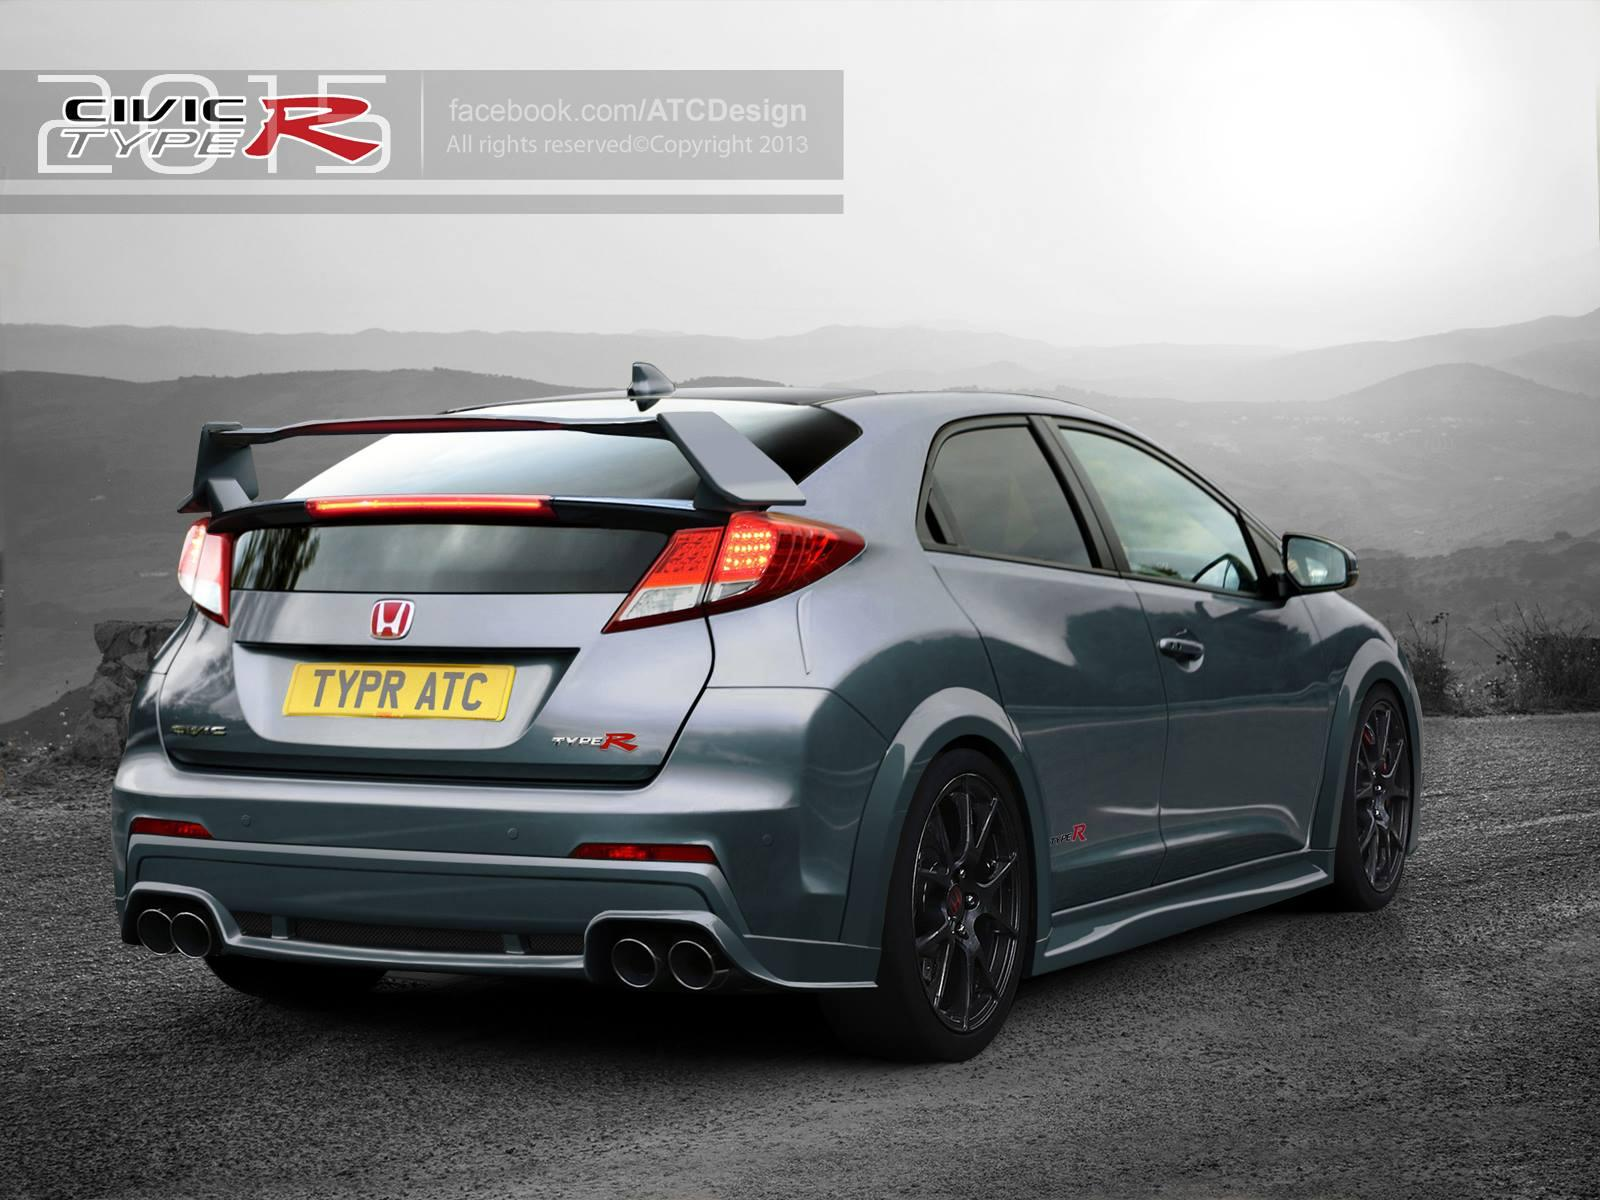 honda cars news 2015 honda civic type r imagined. Black Bedroom Furniture Sets. Home Design Ideas